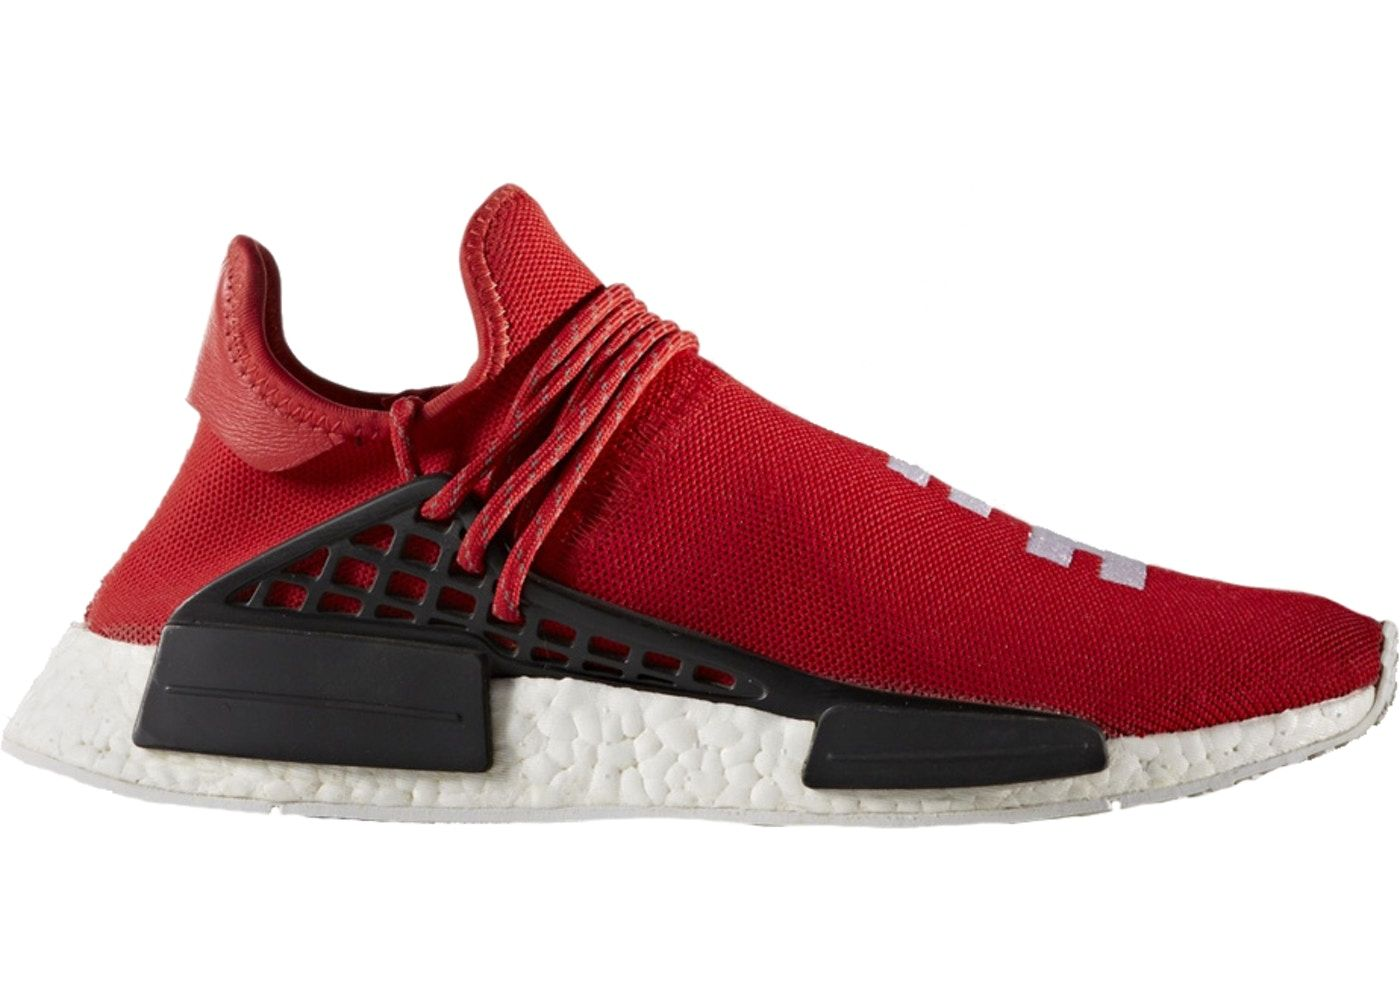 brand new 8286e 774ca adidas NMD HU Pharrell Human Race Scarlet | Shoes in 2019 ...